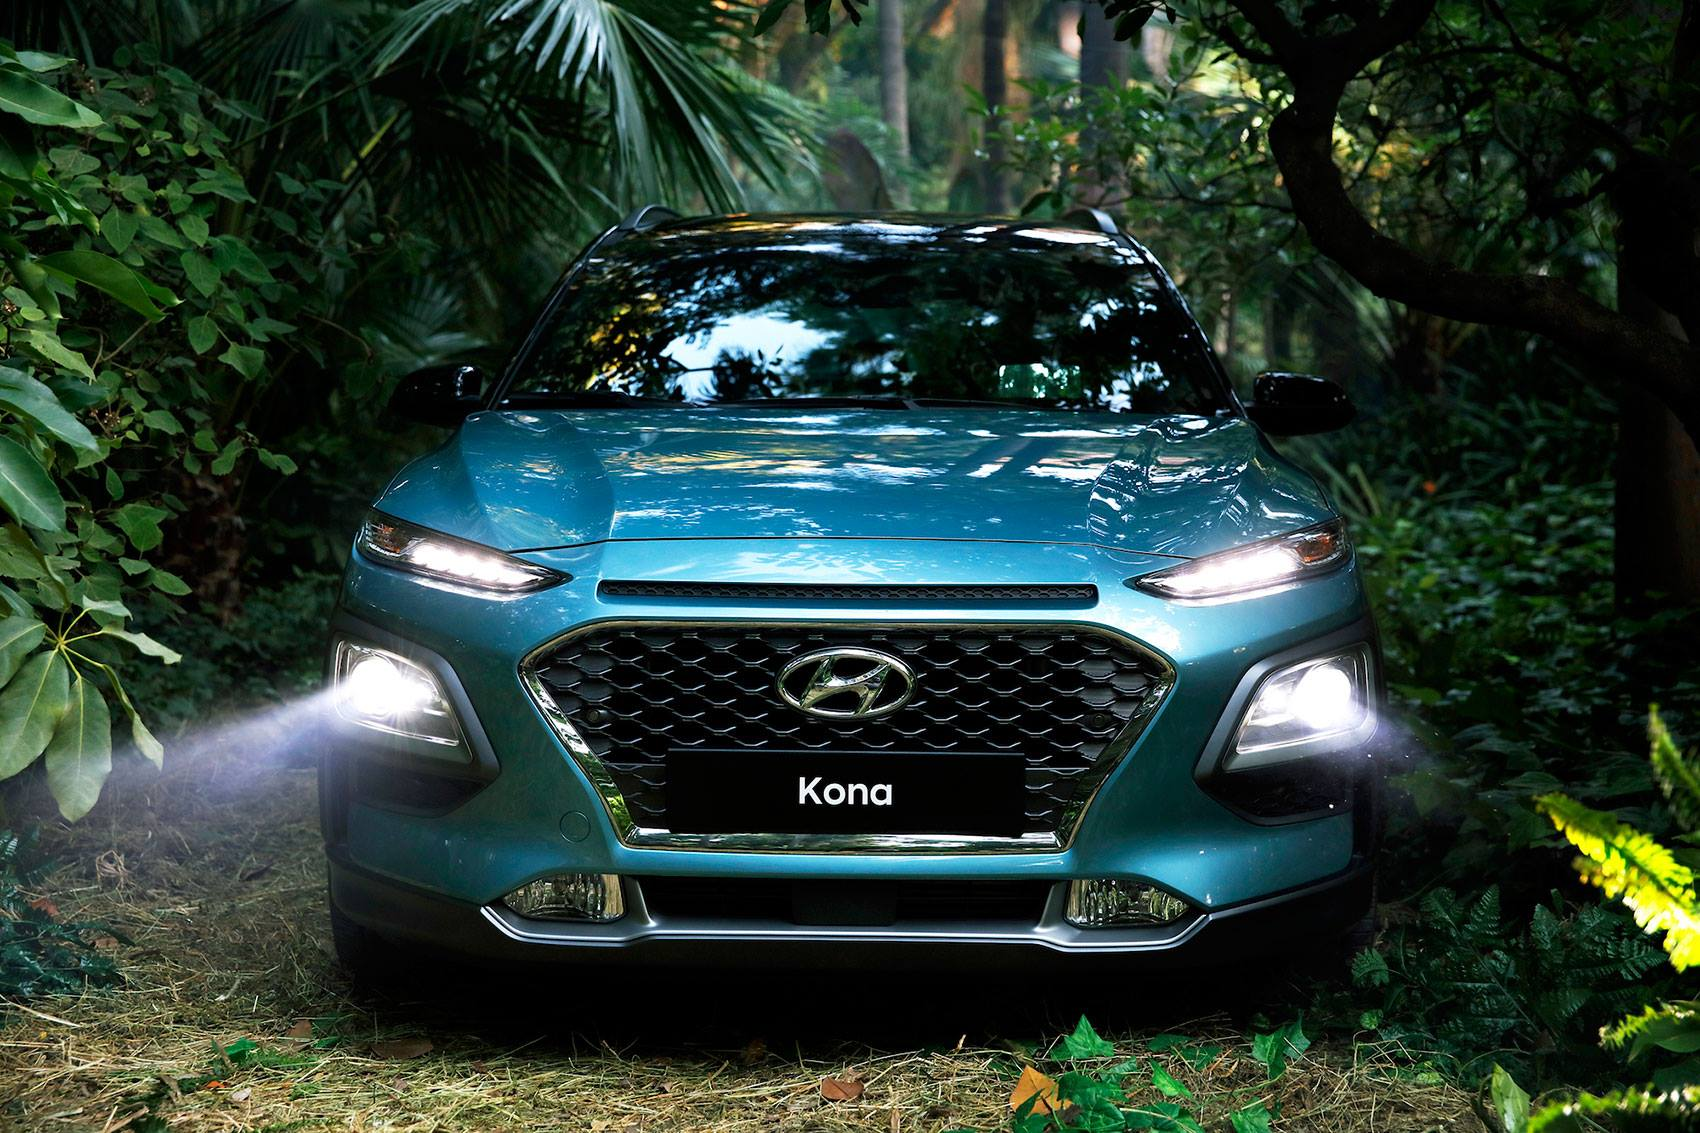 hyundai-kona-electric-crossover-might-have-242-mile-390-km-maximum-range-118566_1.jpg